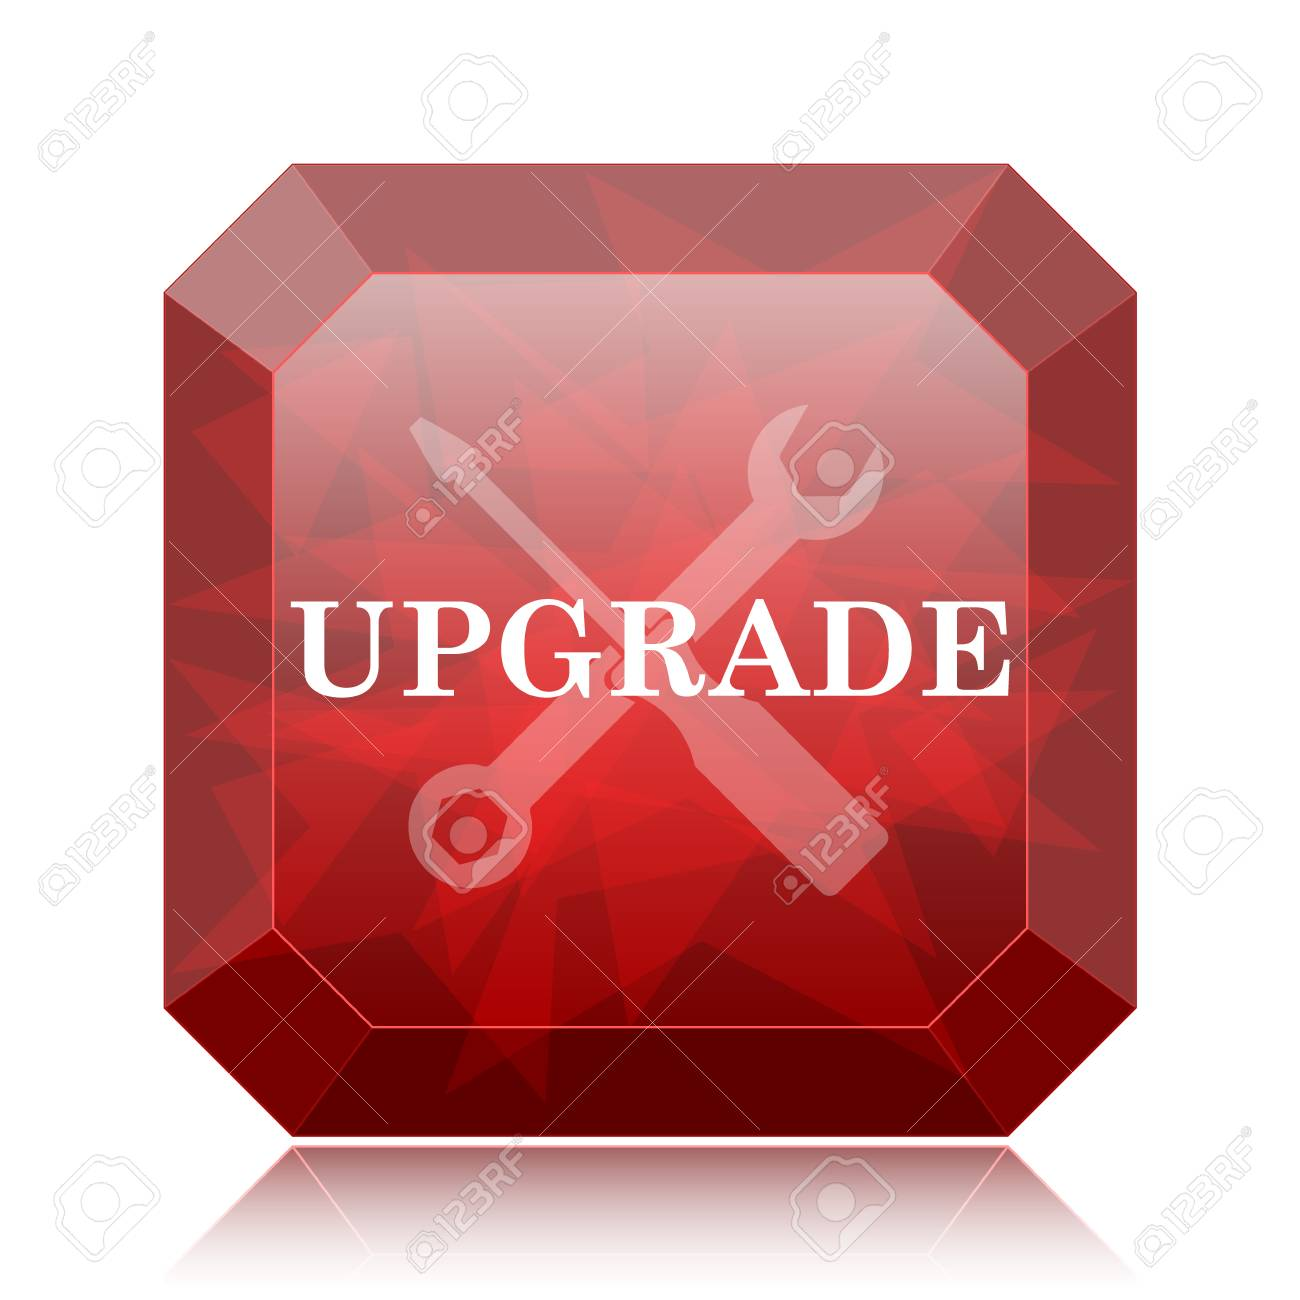 Upgrade Icon Red Website Button On White Background Stock Photo